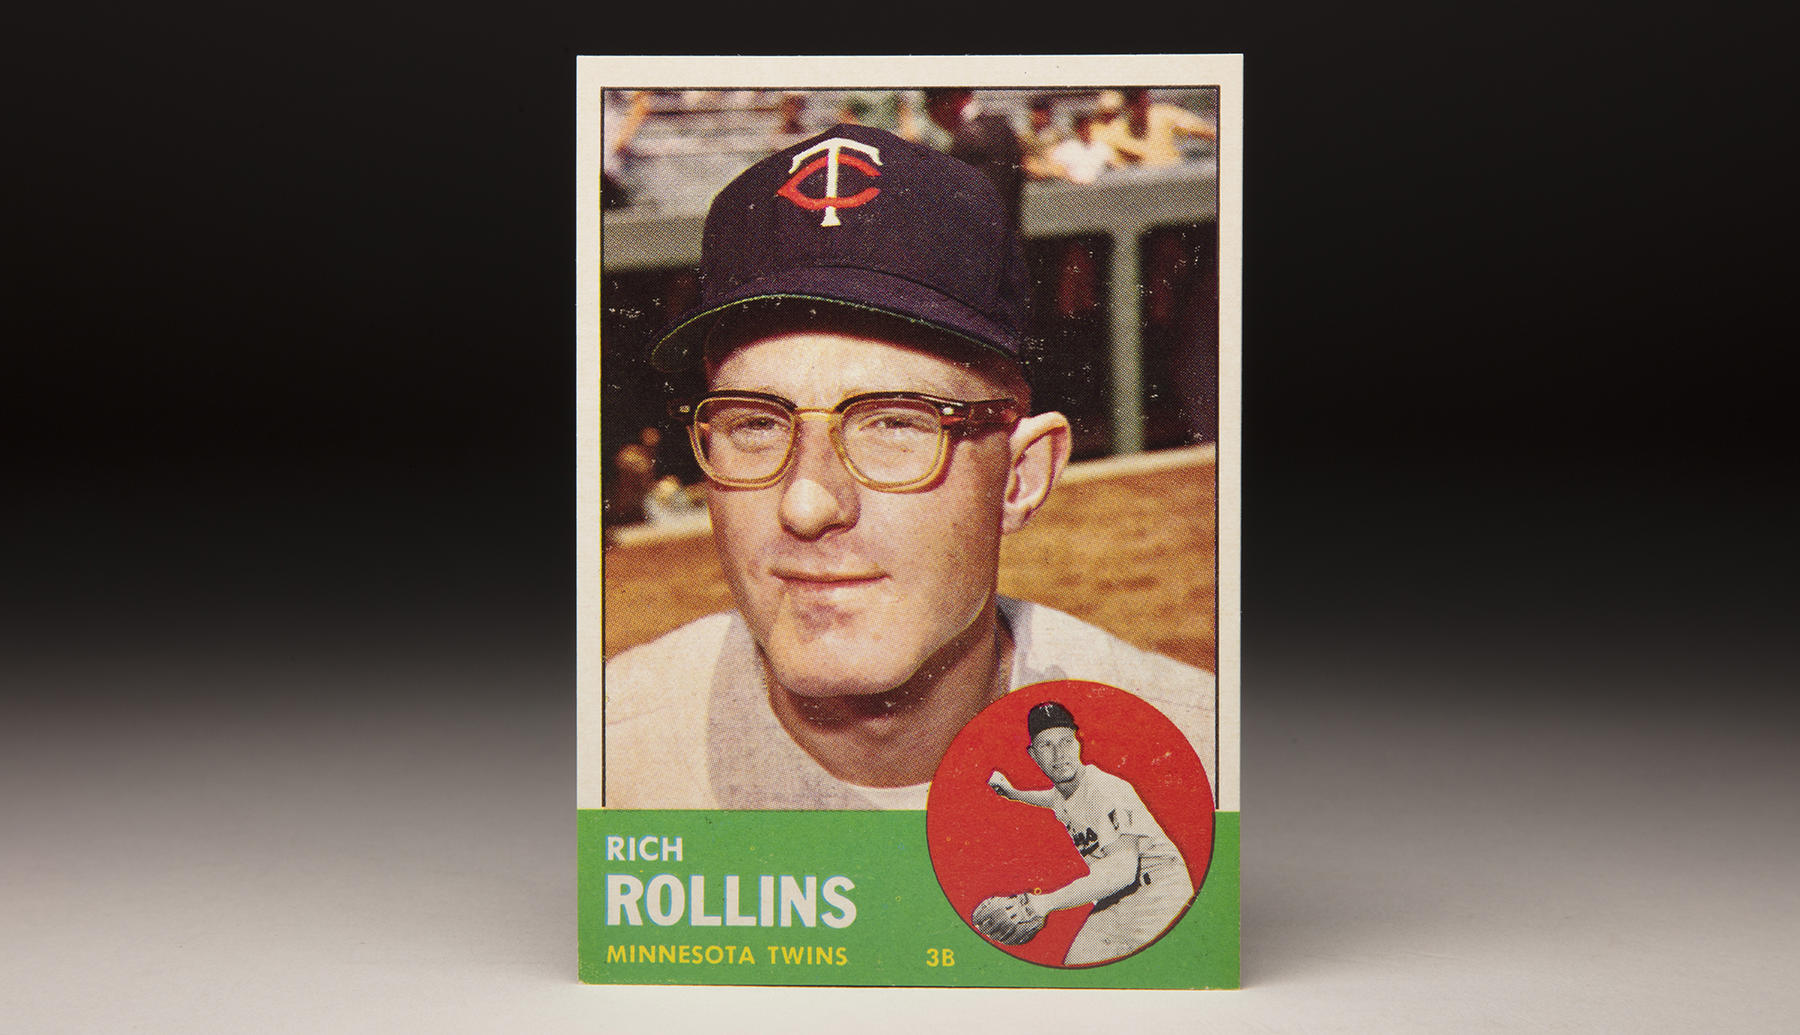 Rich Rollins' 1963 Topps card featured his trademark eyeglasses. (Milo Stewart Jr./National Baseball Hall of Fame and Museum)